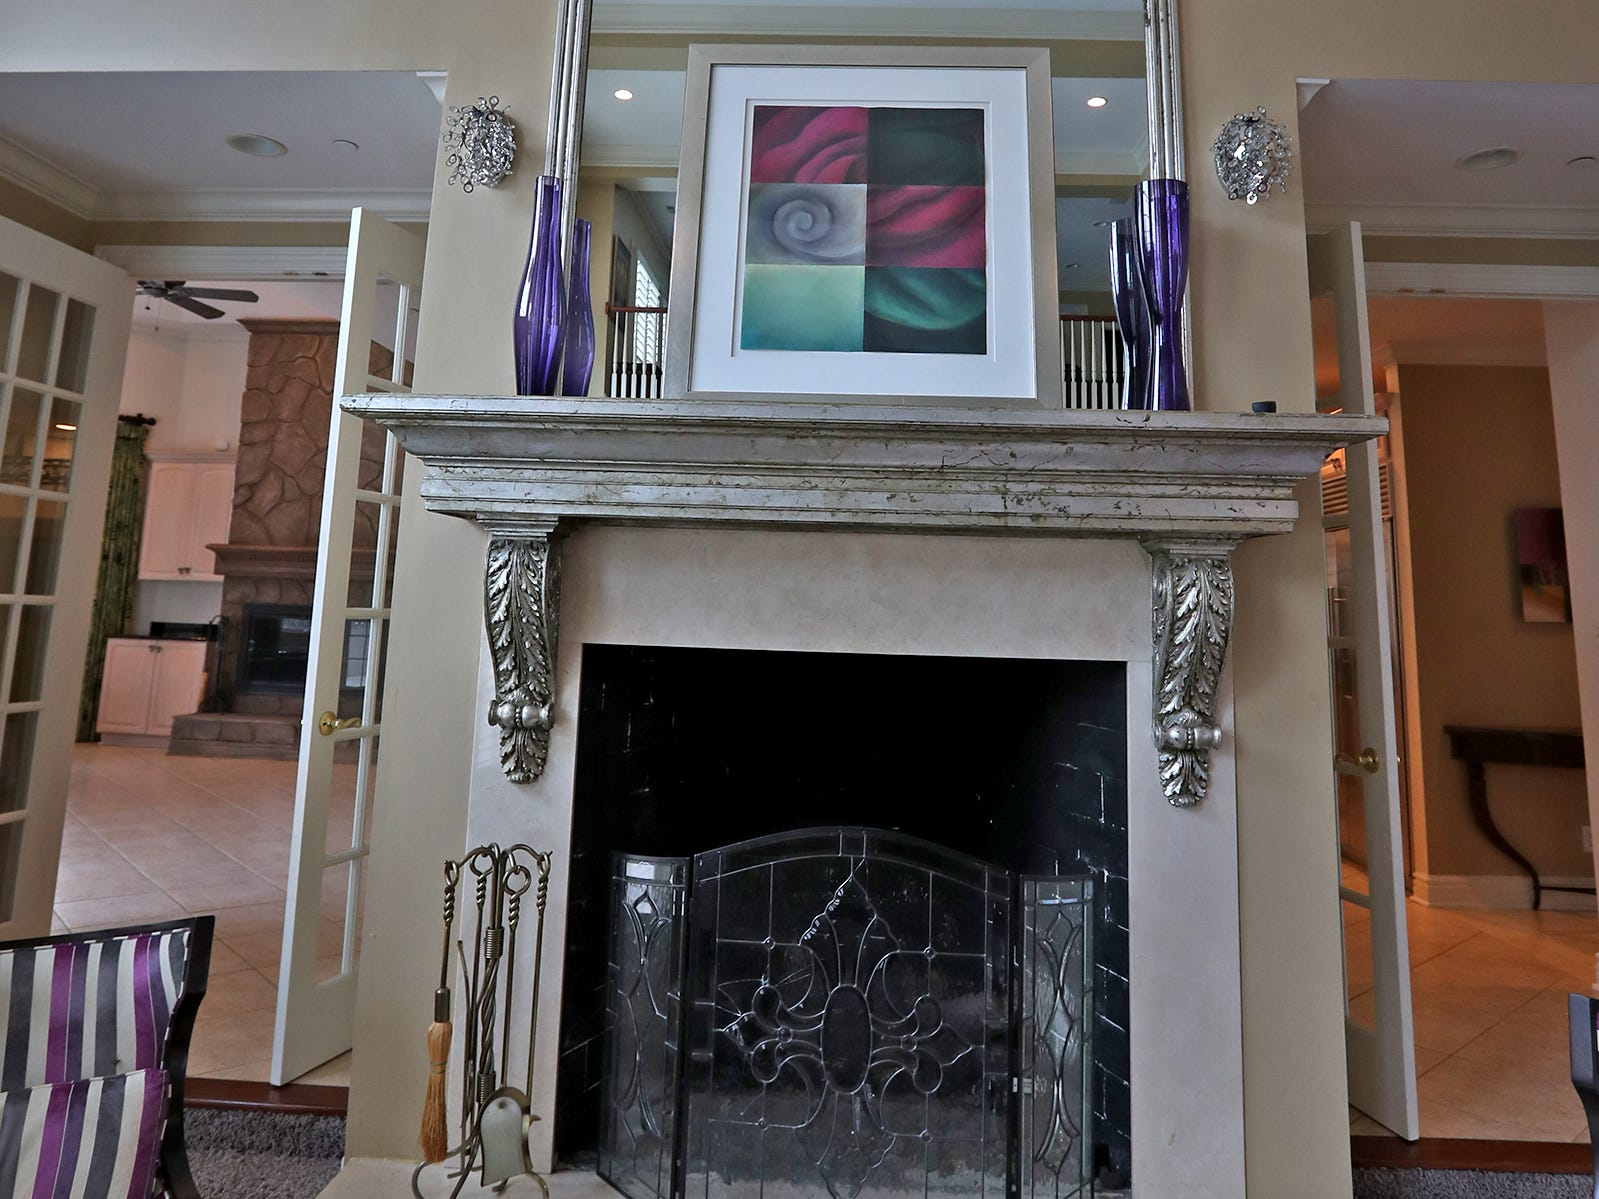 This is the fireplace in the two-story living room in the home at 1270 Laurelwood Ct. in Carmel, Friday, Dec. 28, 2018.